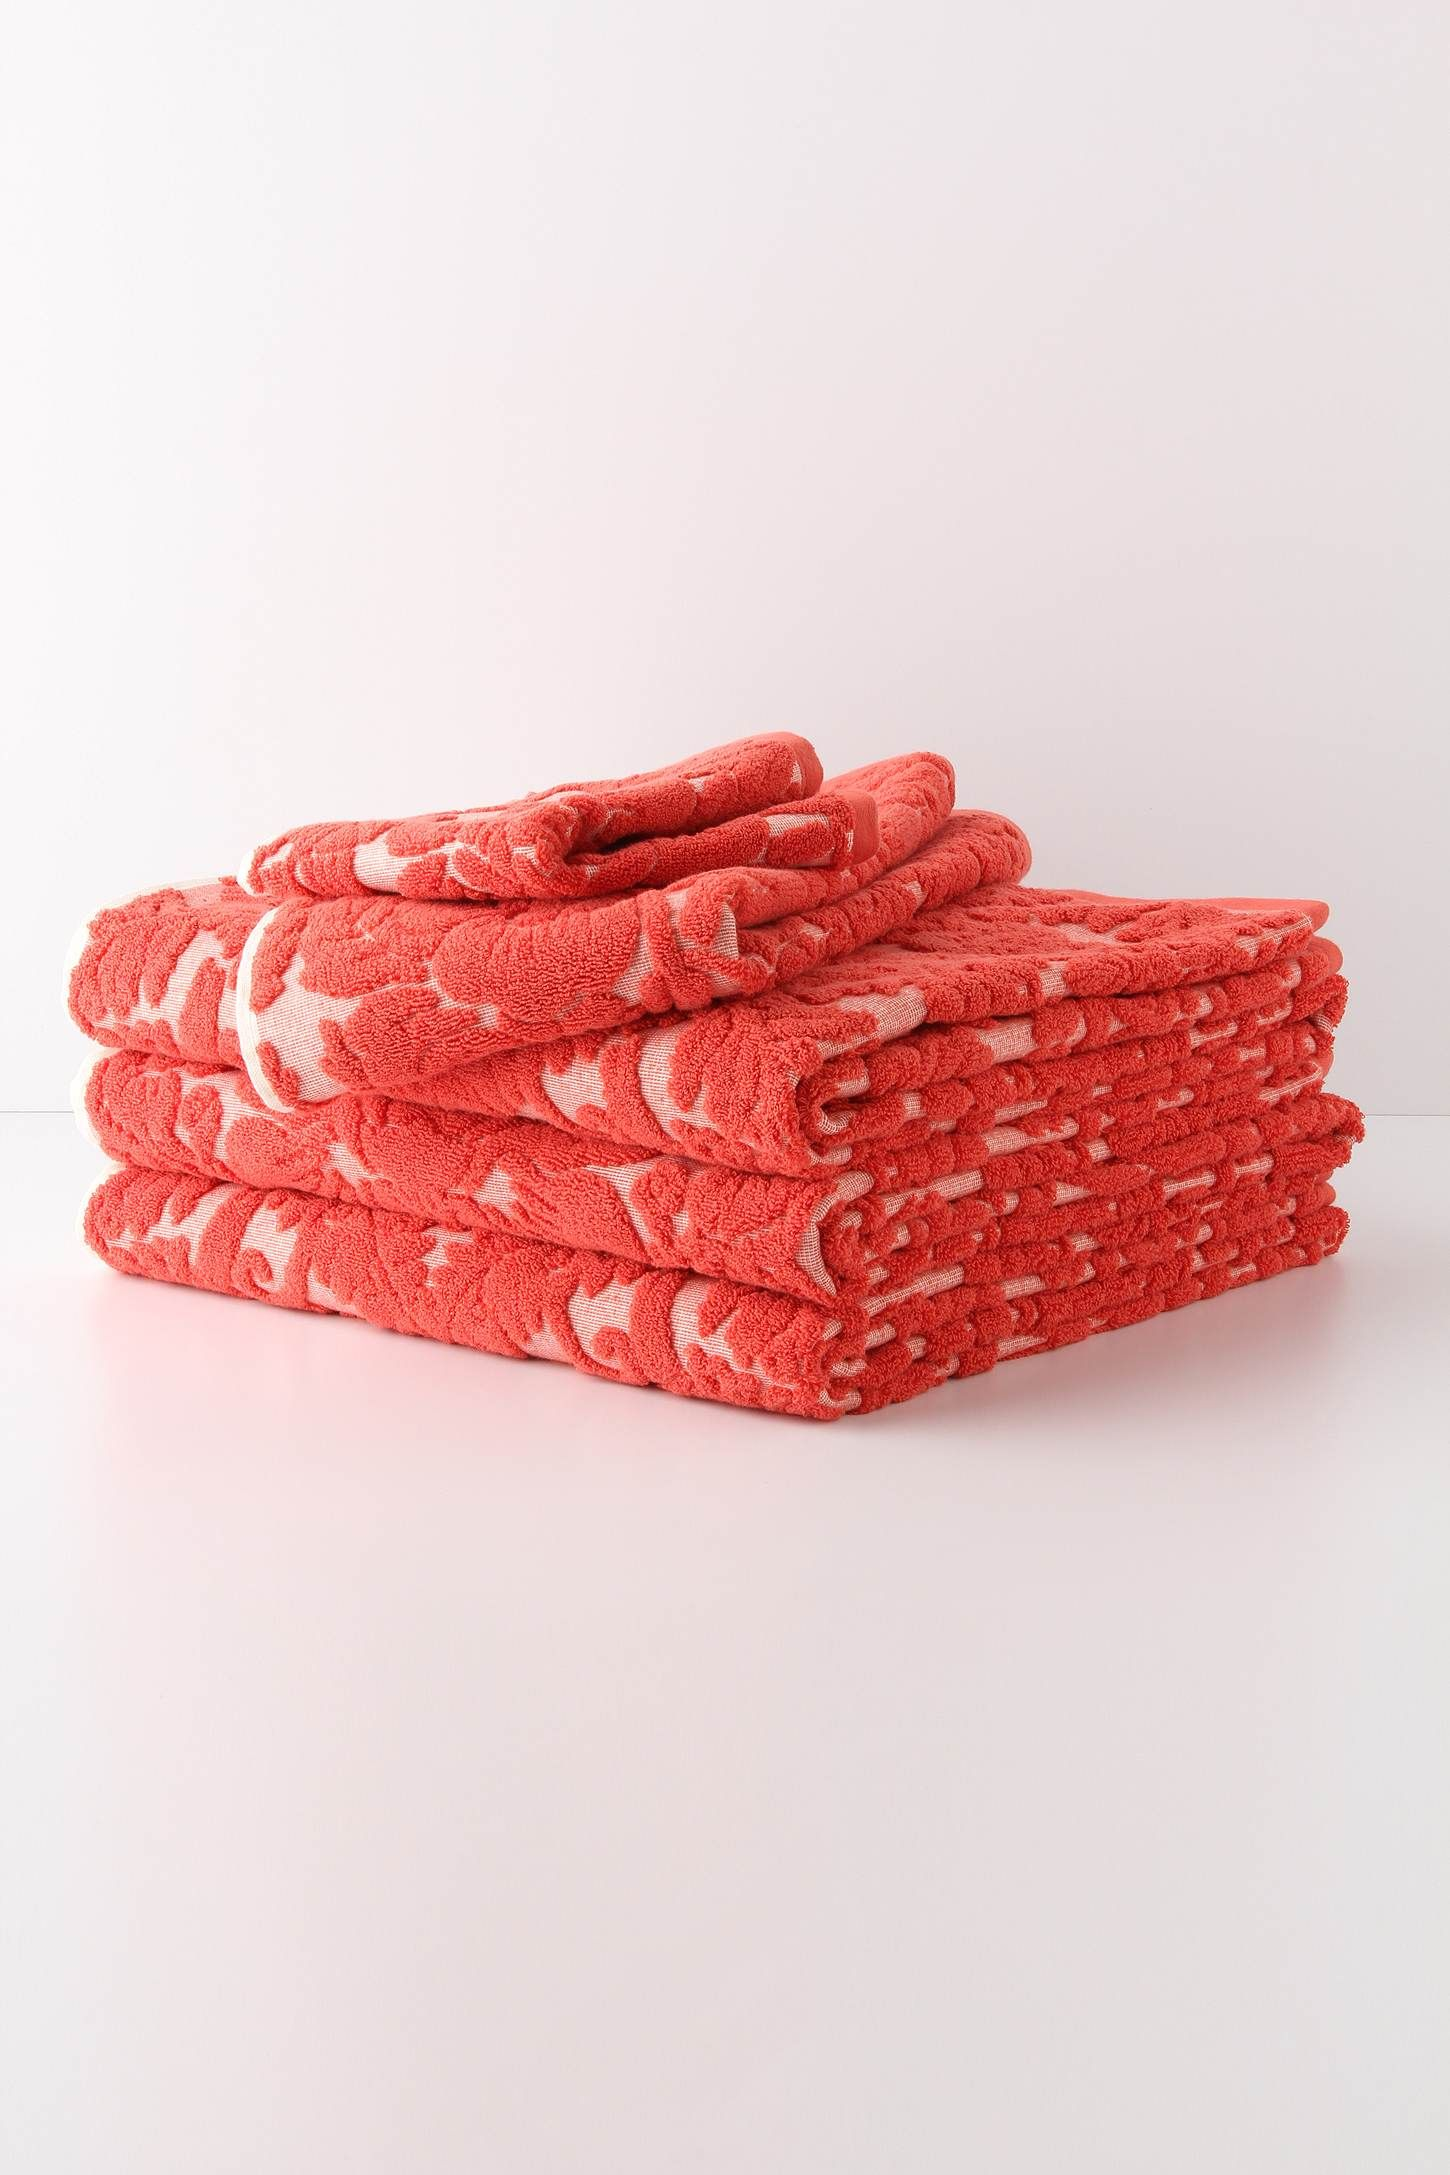 Perpetual Blooms Towels In Coral Anthropologie Coral - Coral bath towels for small bathroom ideas